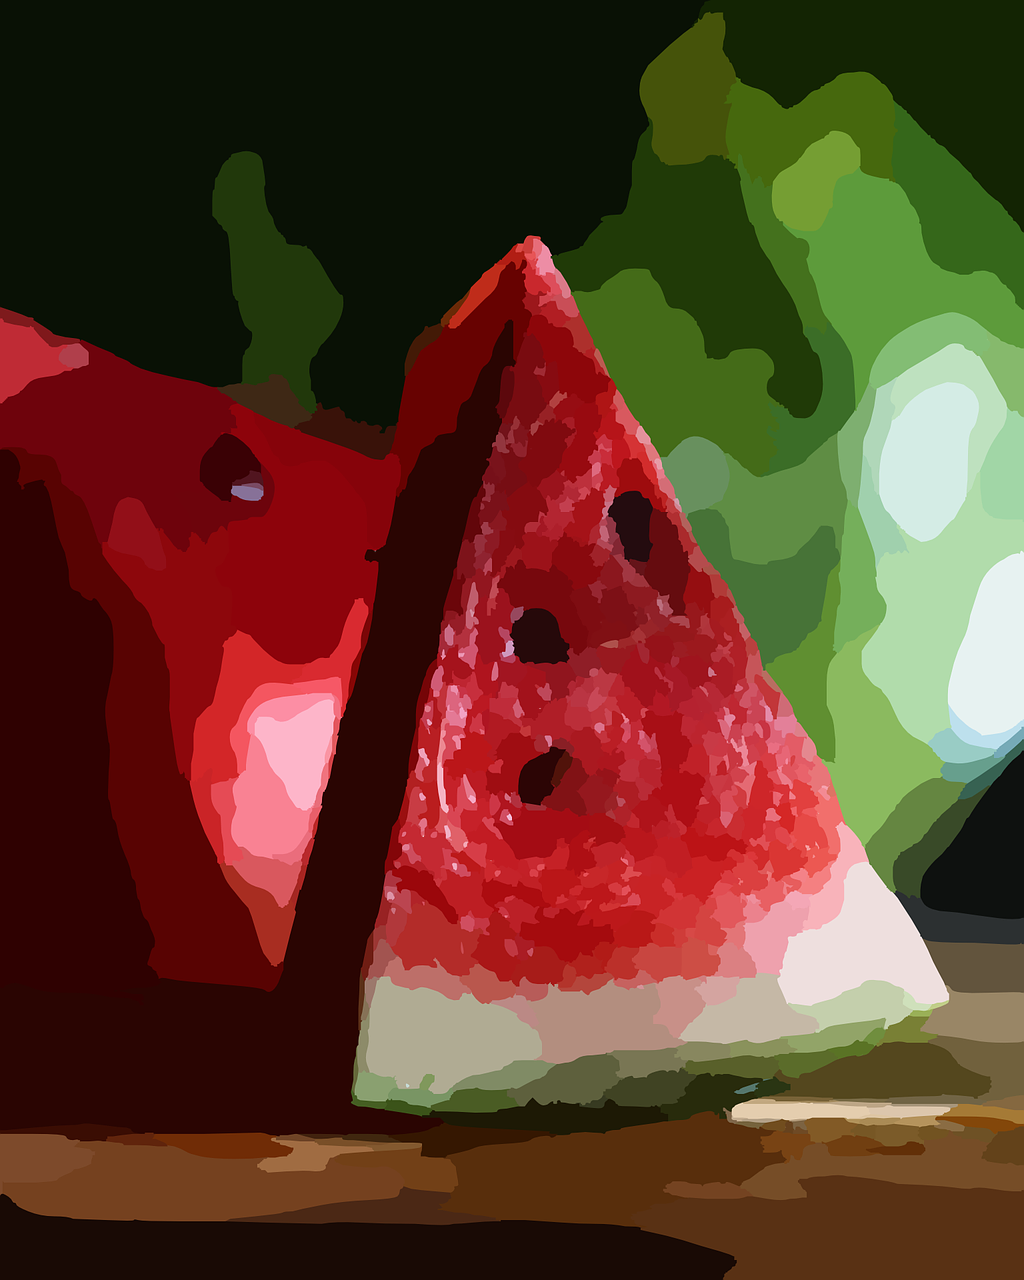 watermelons food melon free photo